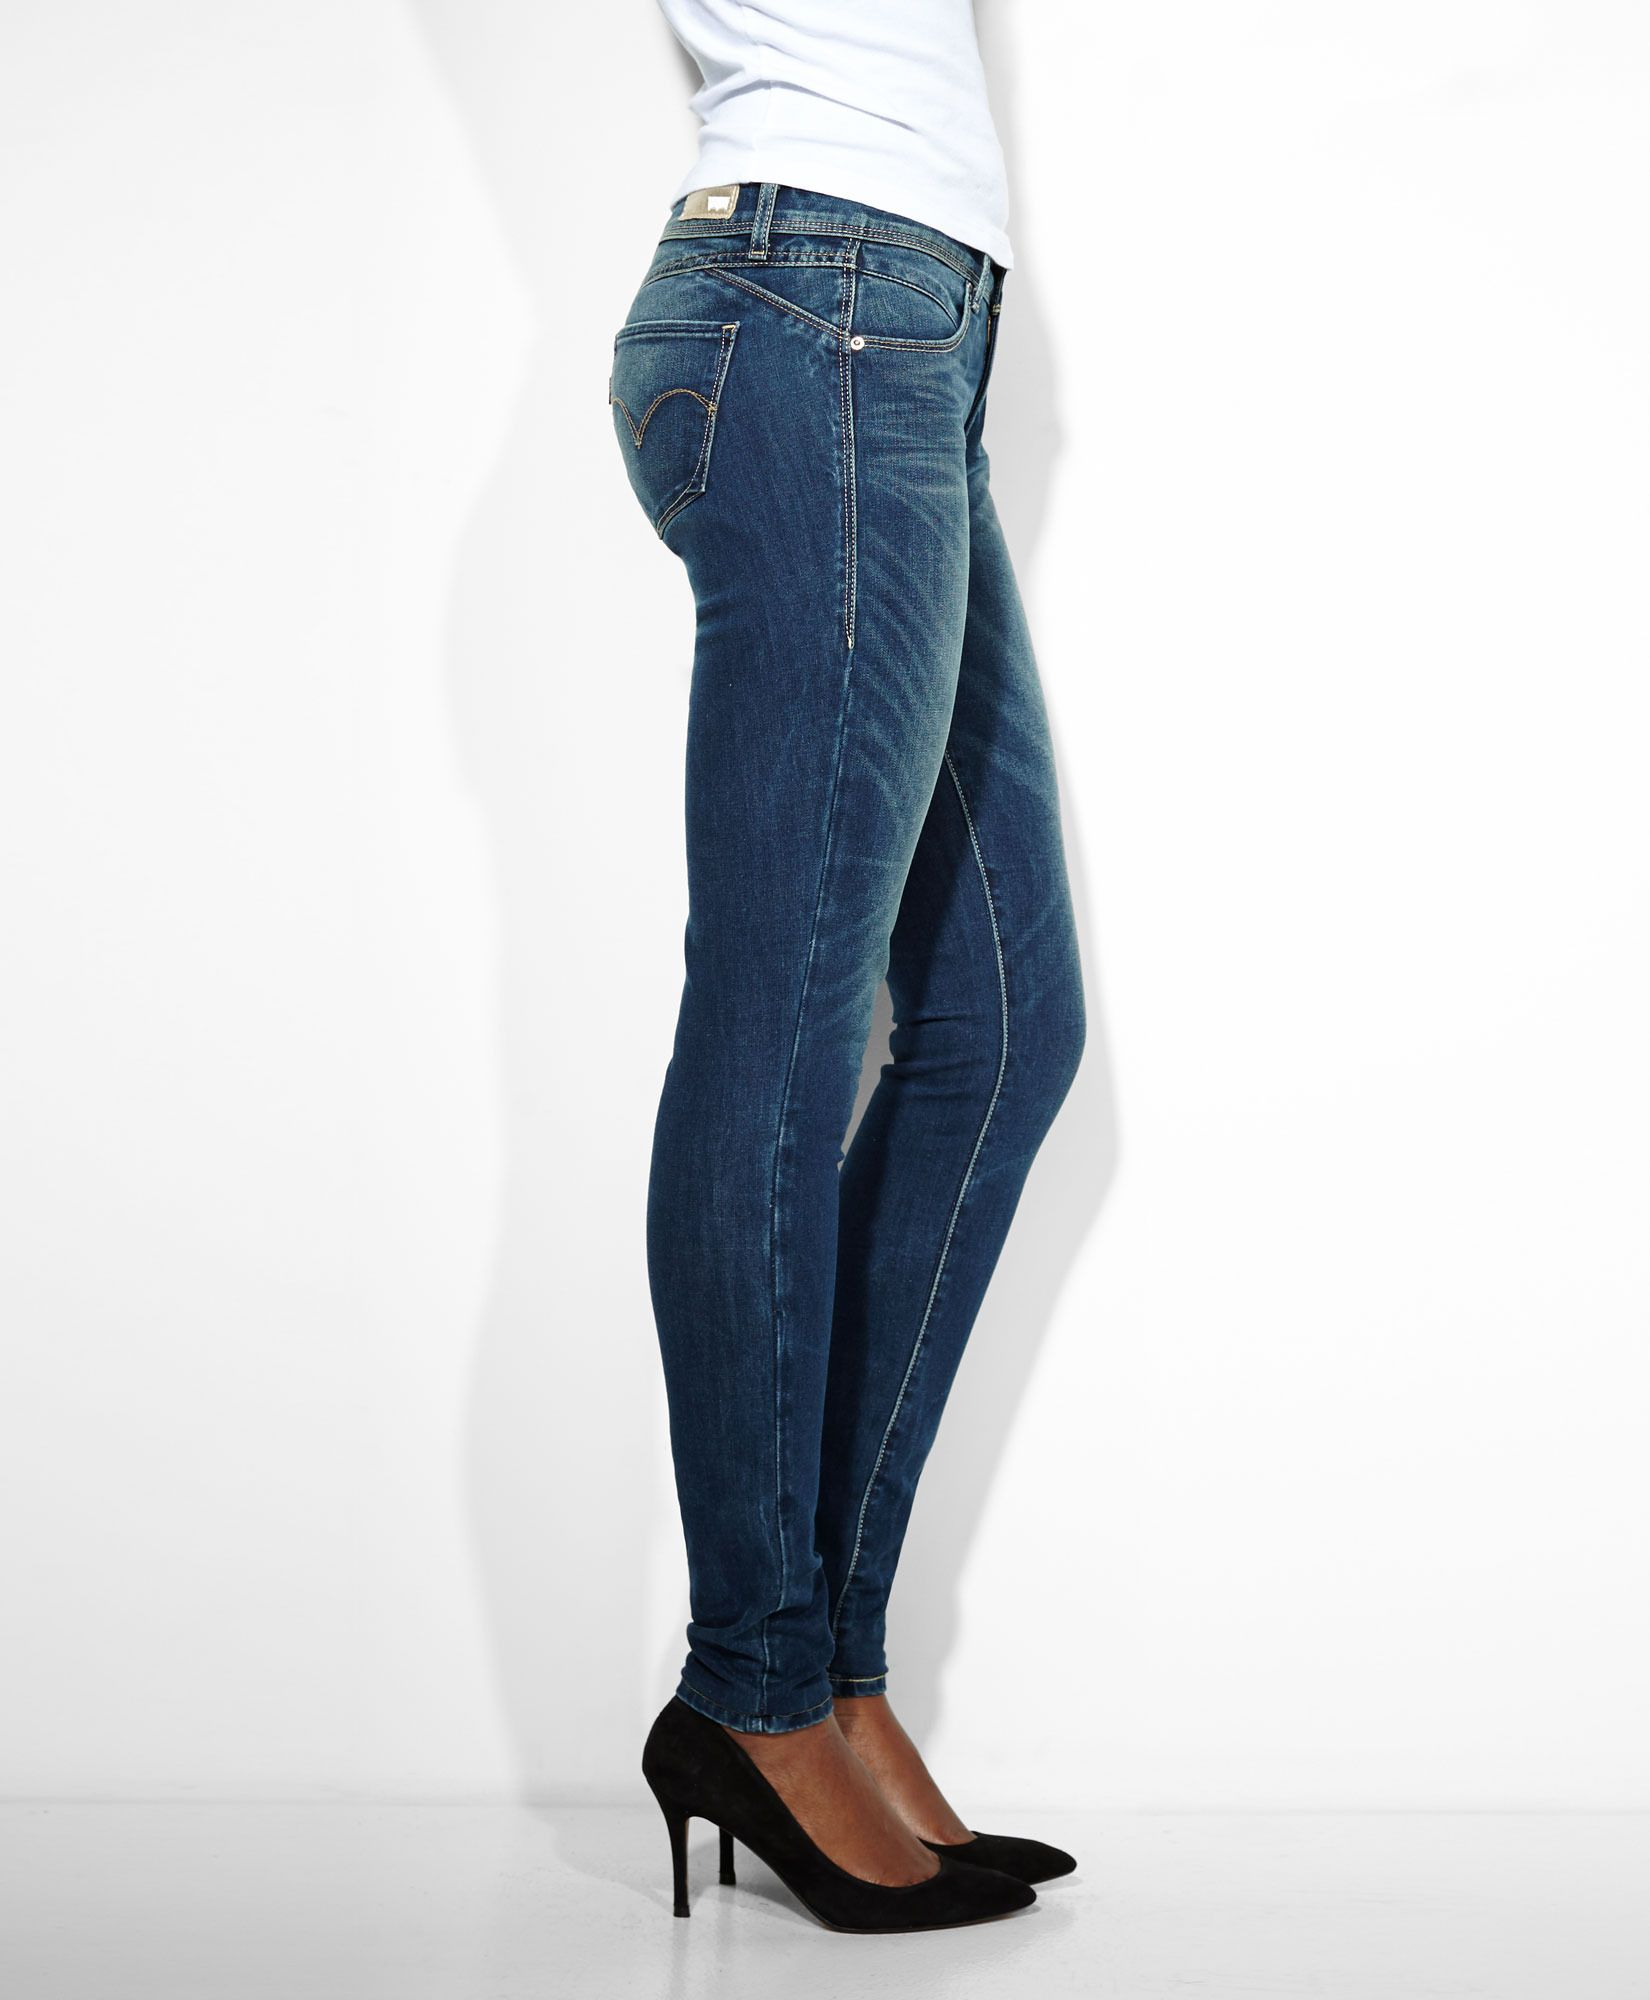 8a4a24c169d Levi s Levi s® Revel™ Bold Curve Skinny Jeans - new Liquid Shaping  Technology